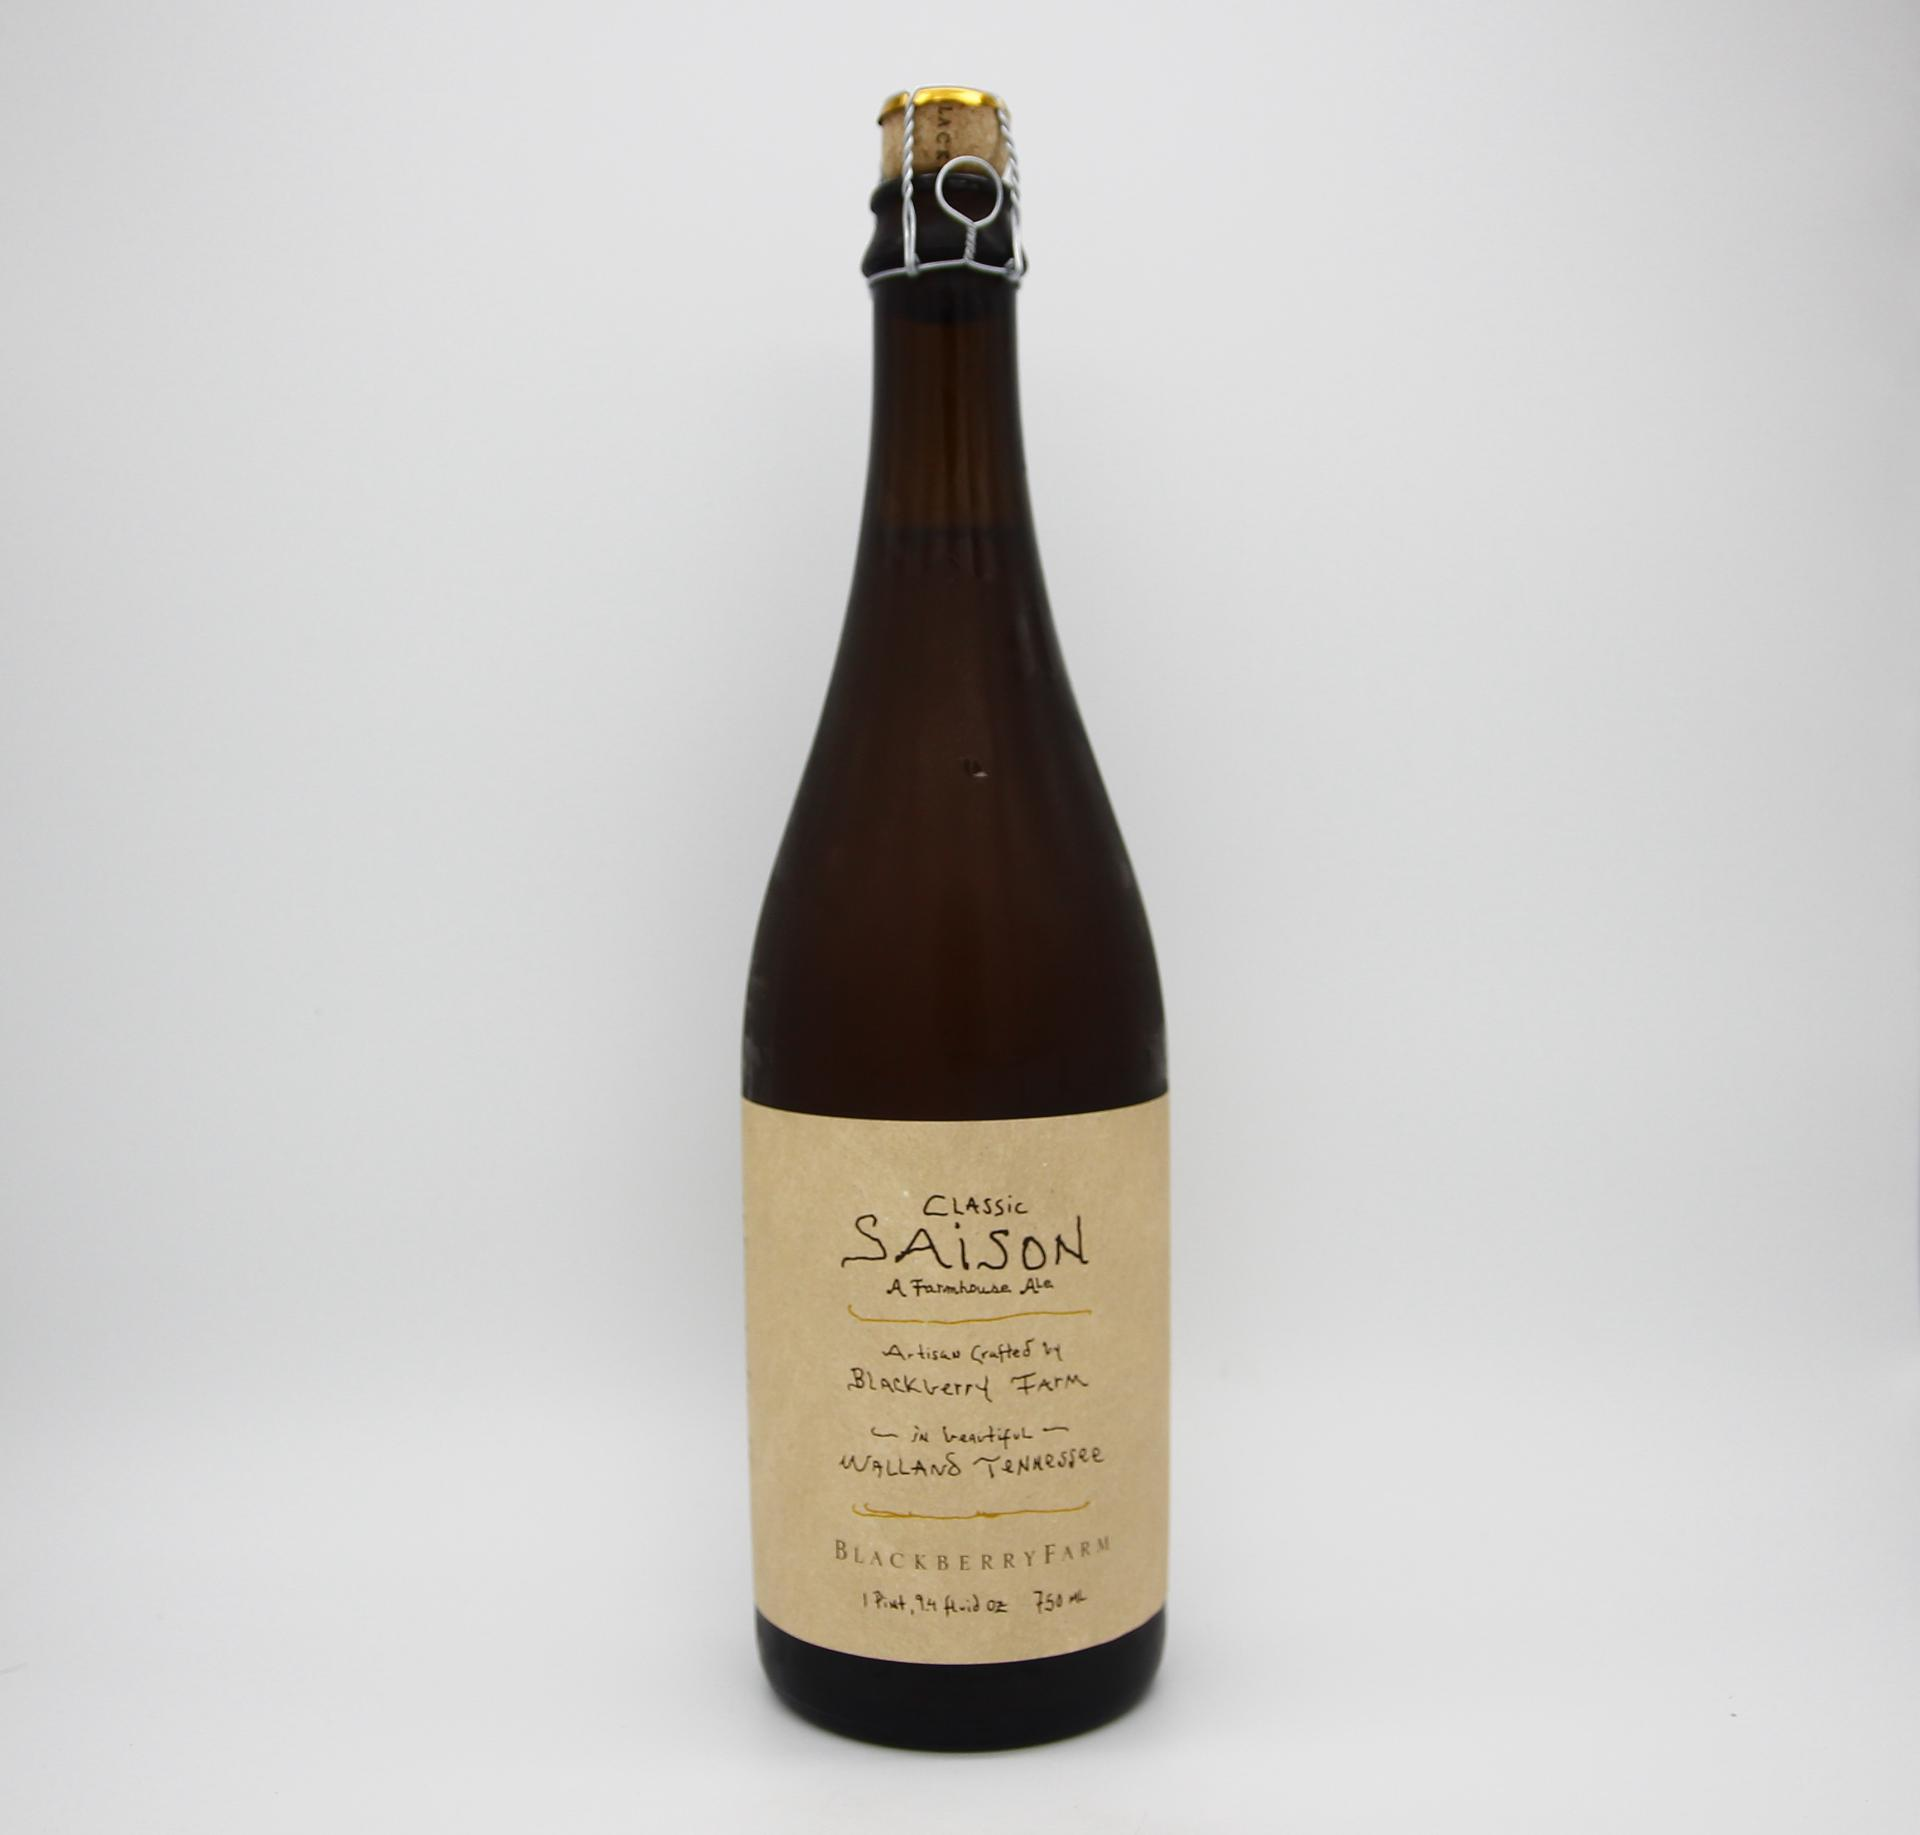 BLACKBERRY FARM - CLASSIC SAISON 75cl